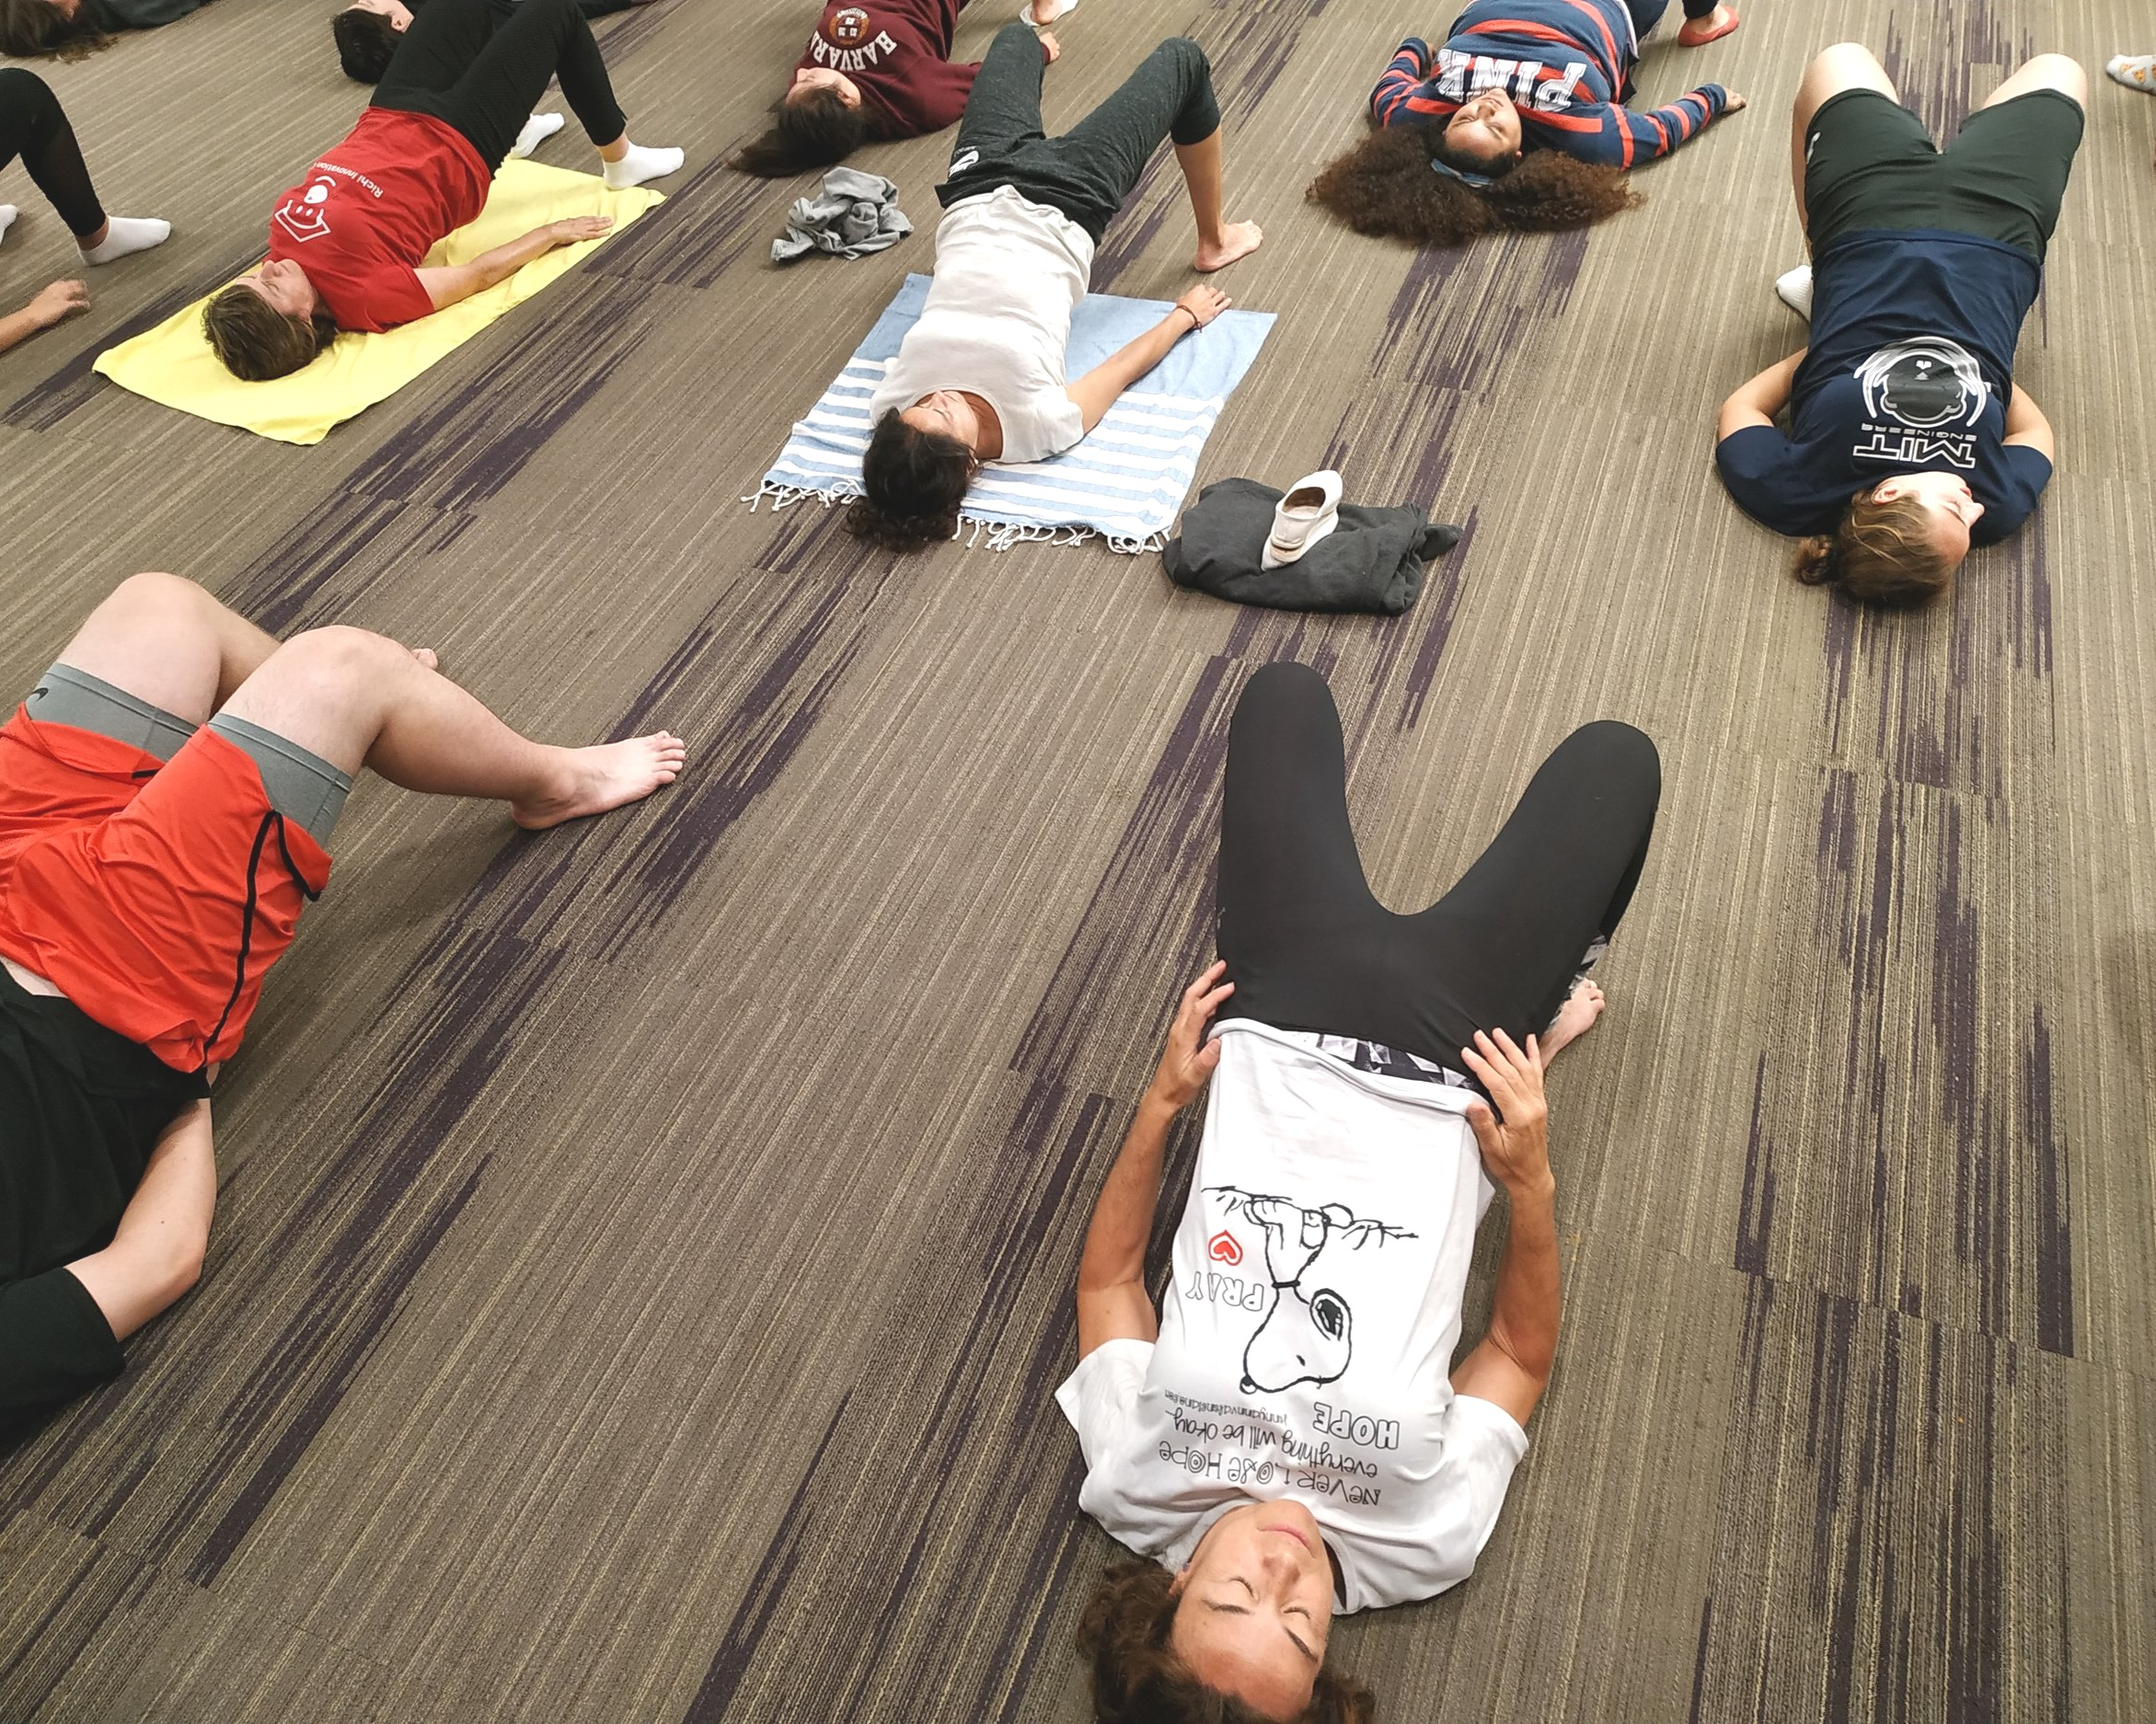 The Innovators finishing the day during the Yoga practise